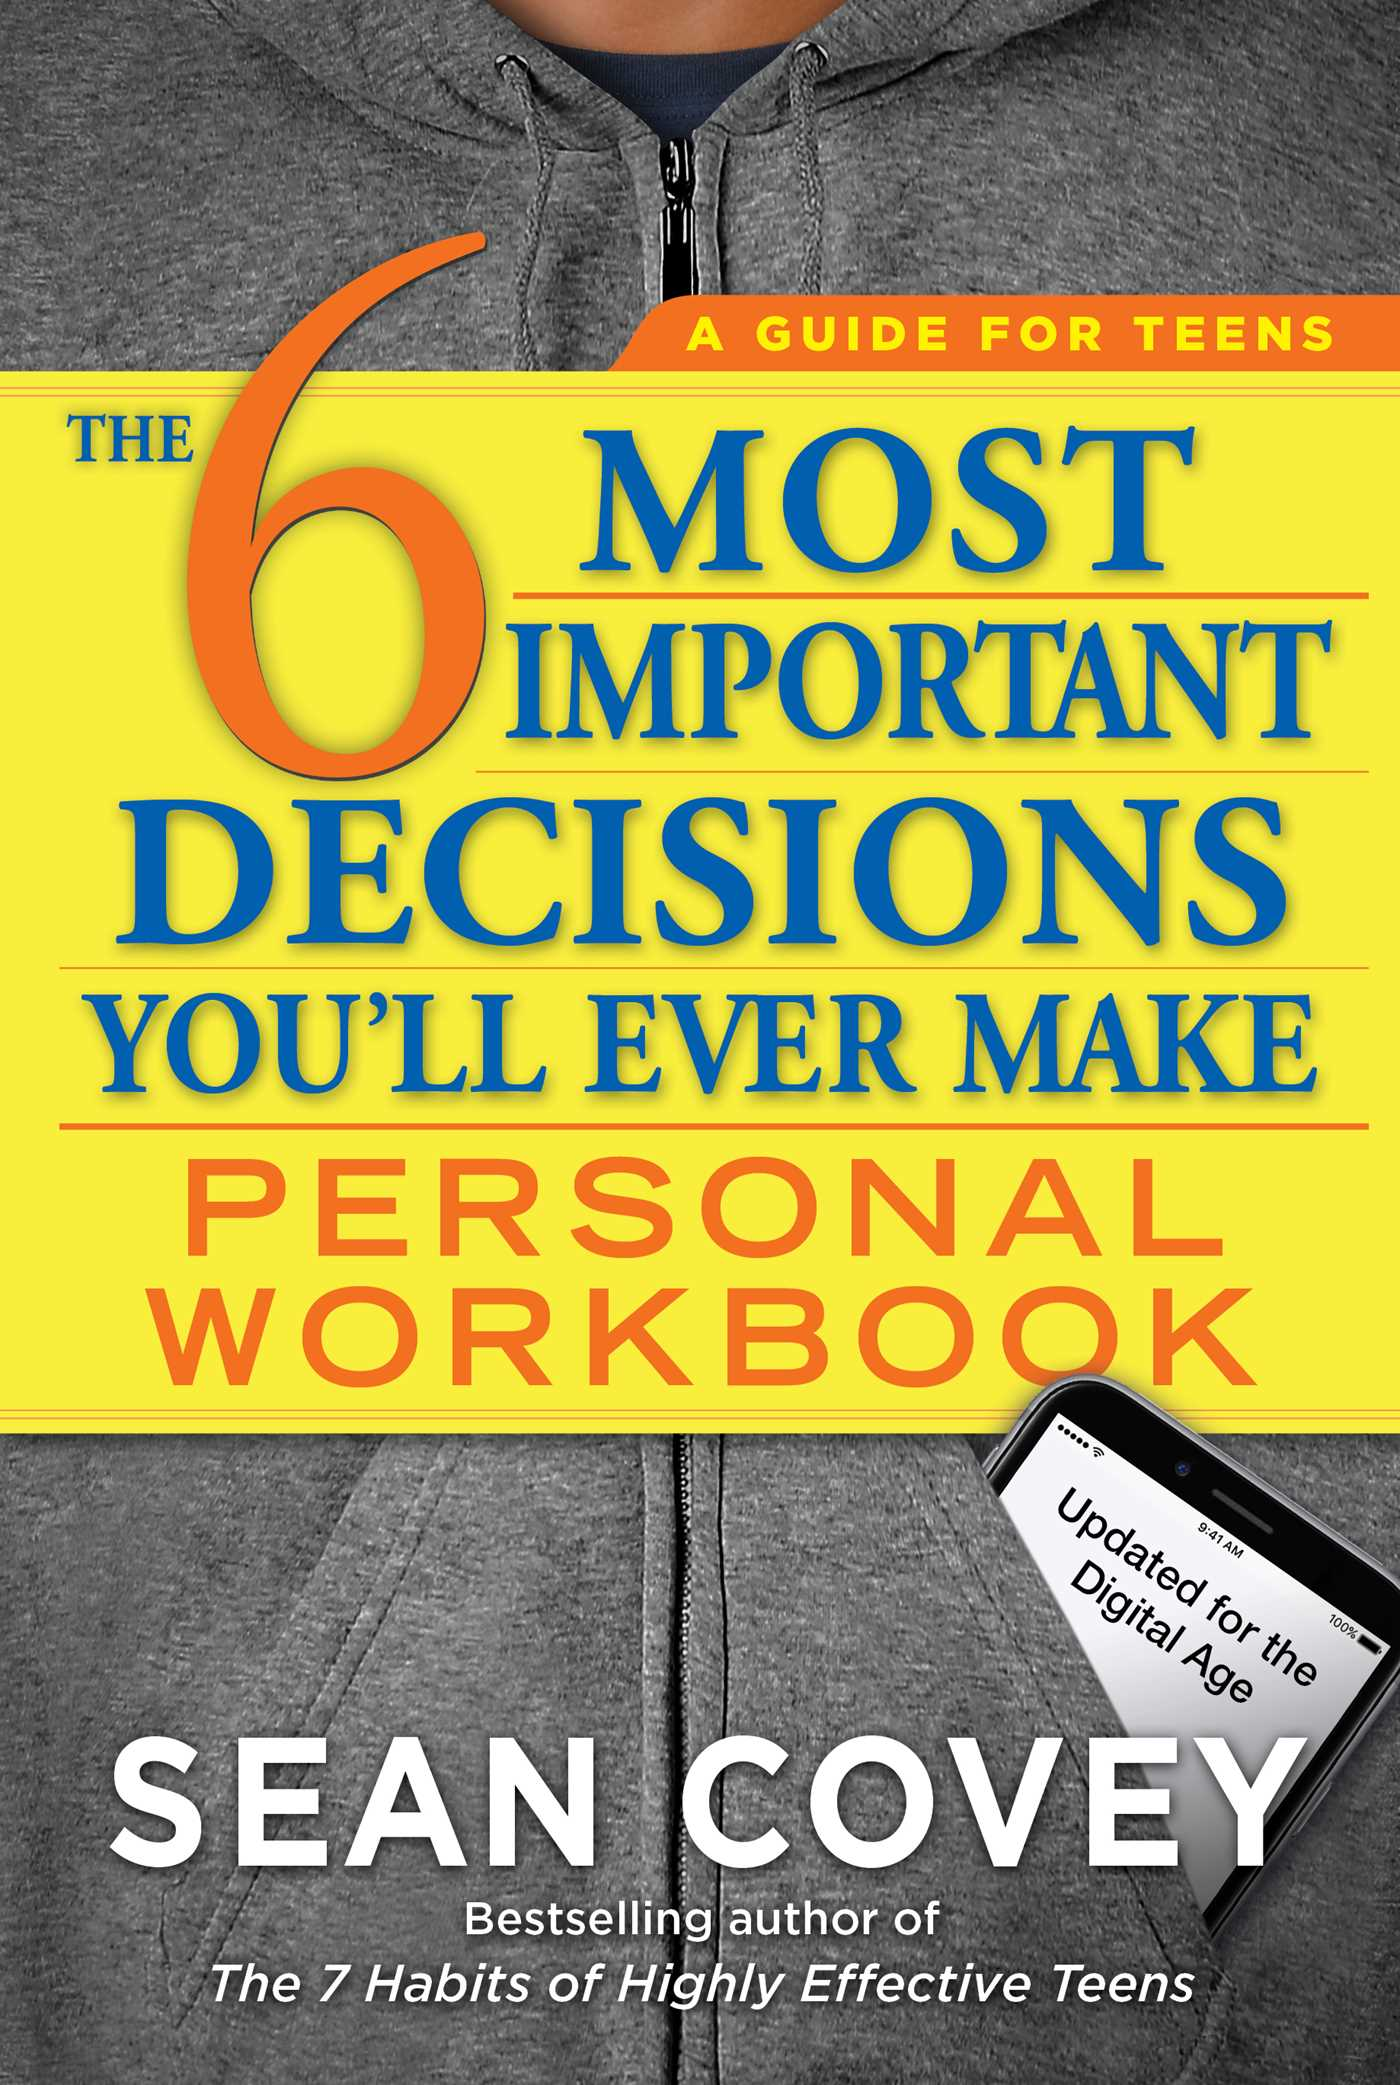 The 6 most important decisions youll ever make personal workbook 9781501157141 hr